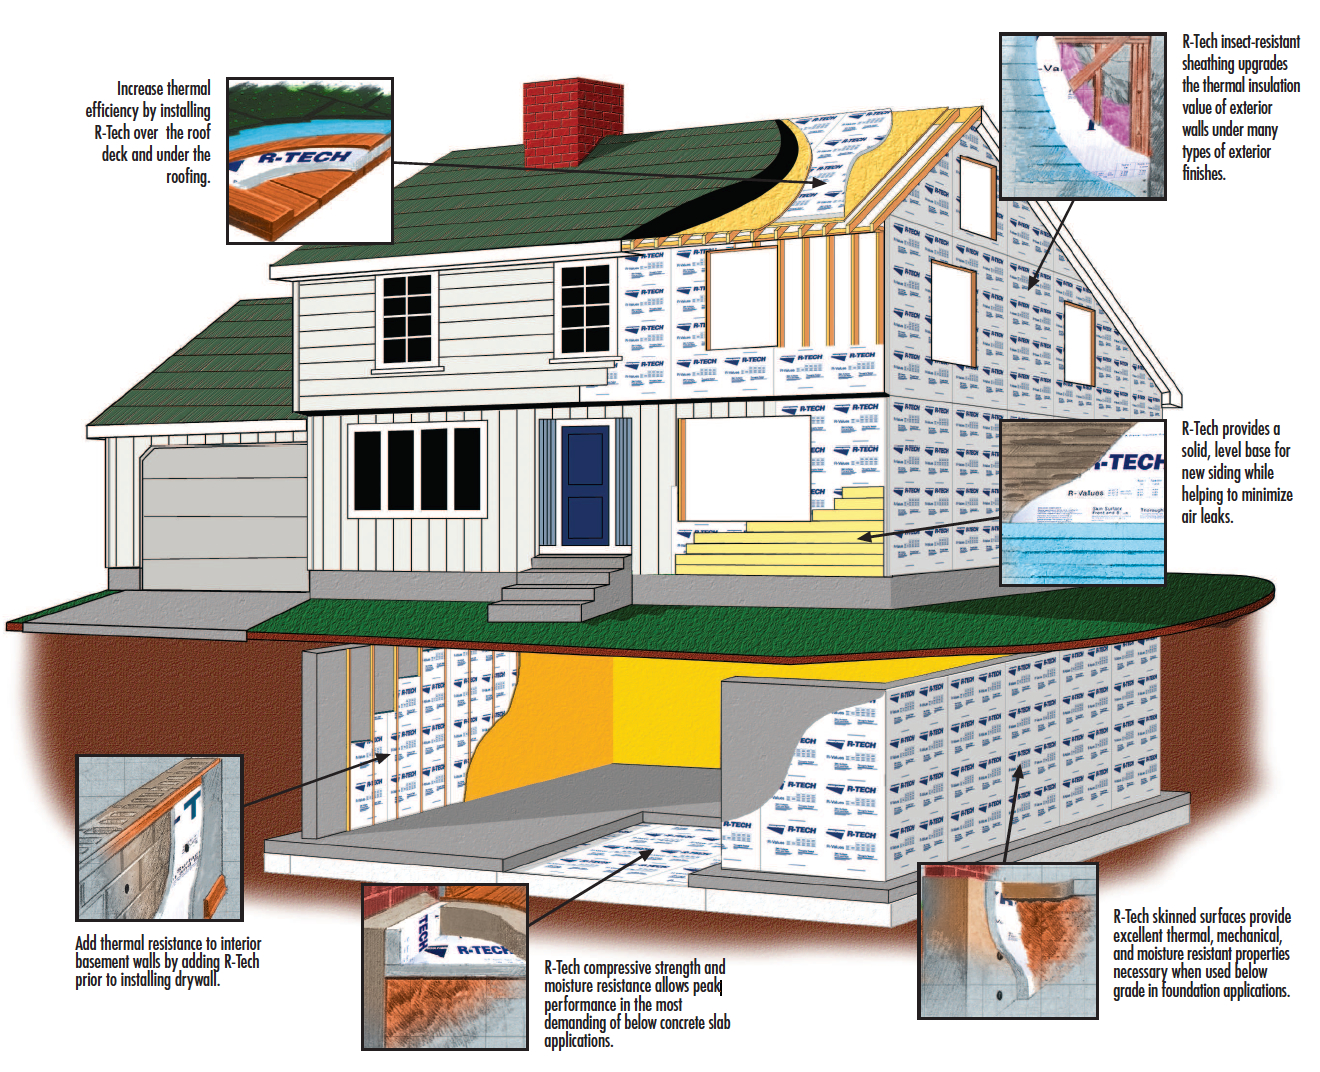 Home insulation solutions insulfoam residential insulation - Advice on insulating your home ...